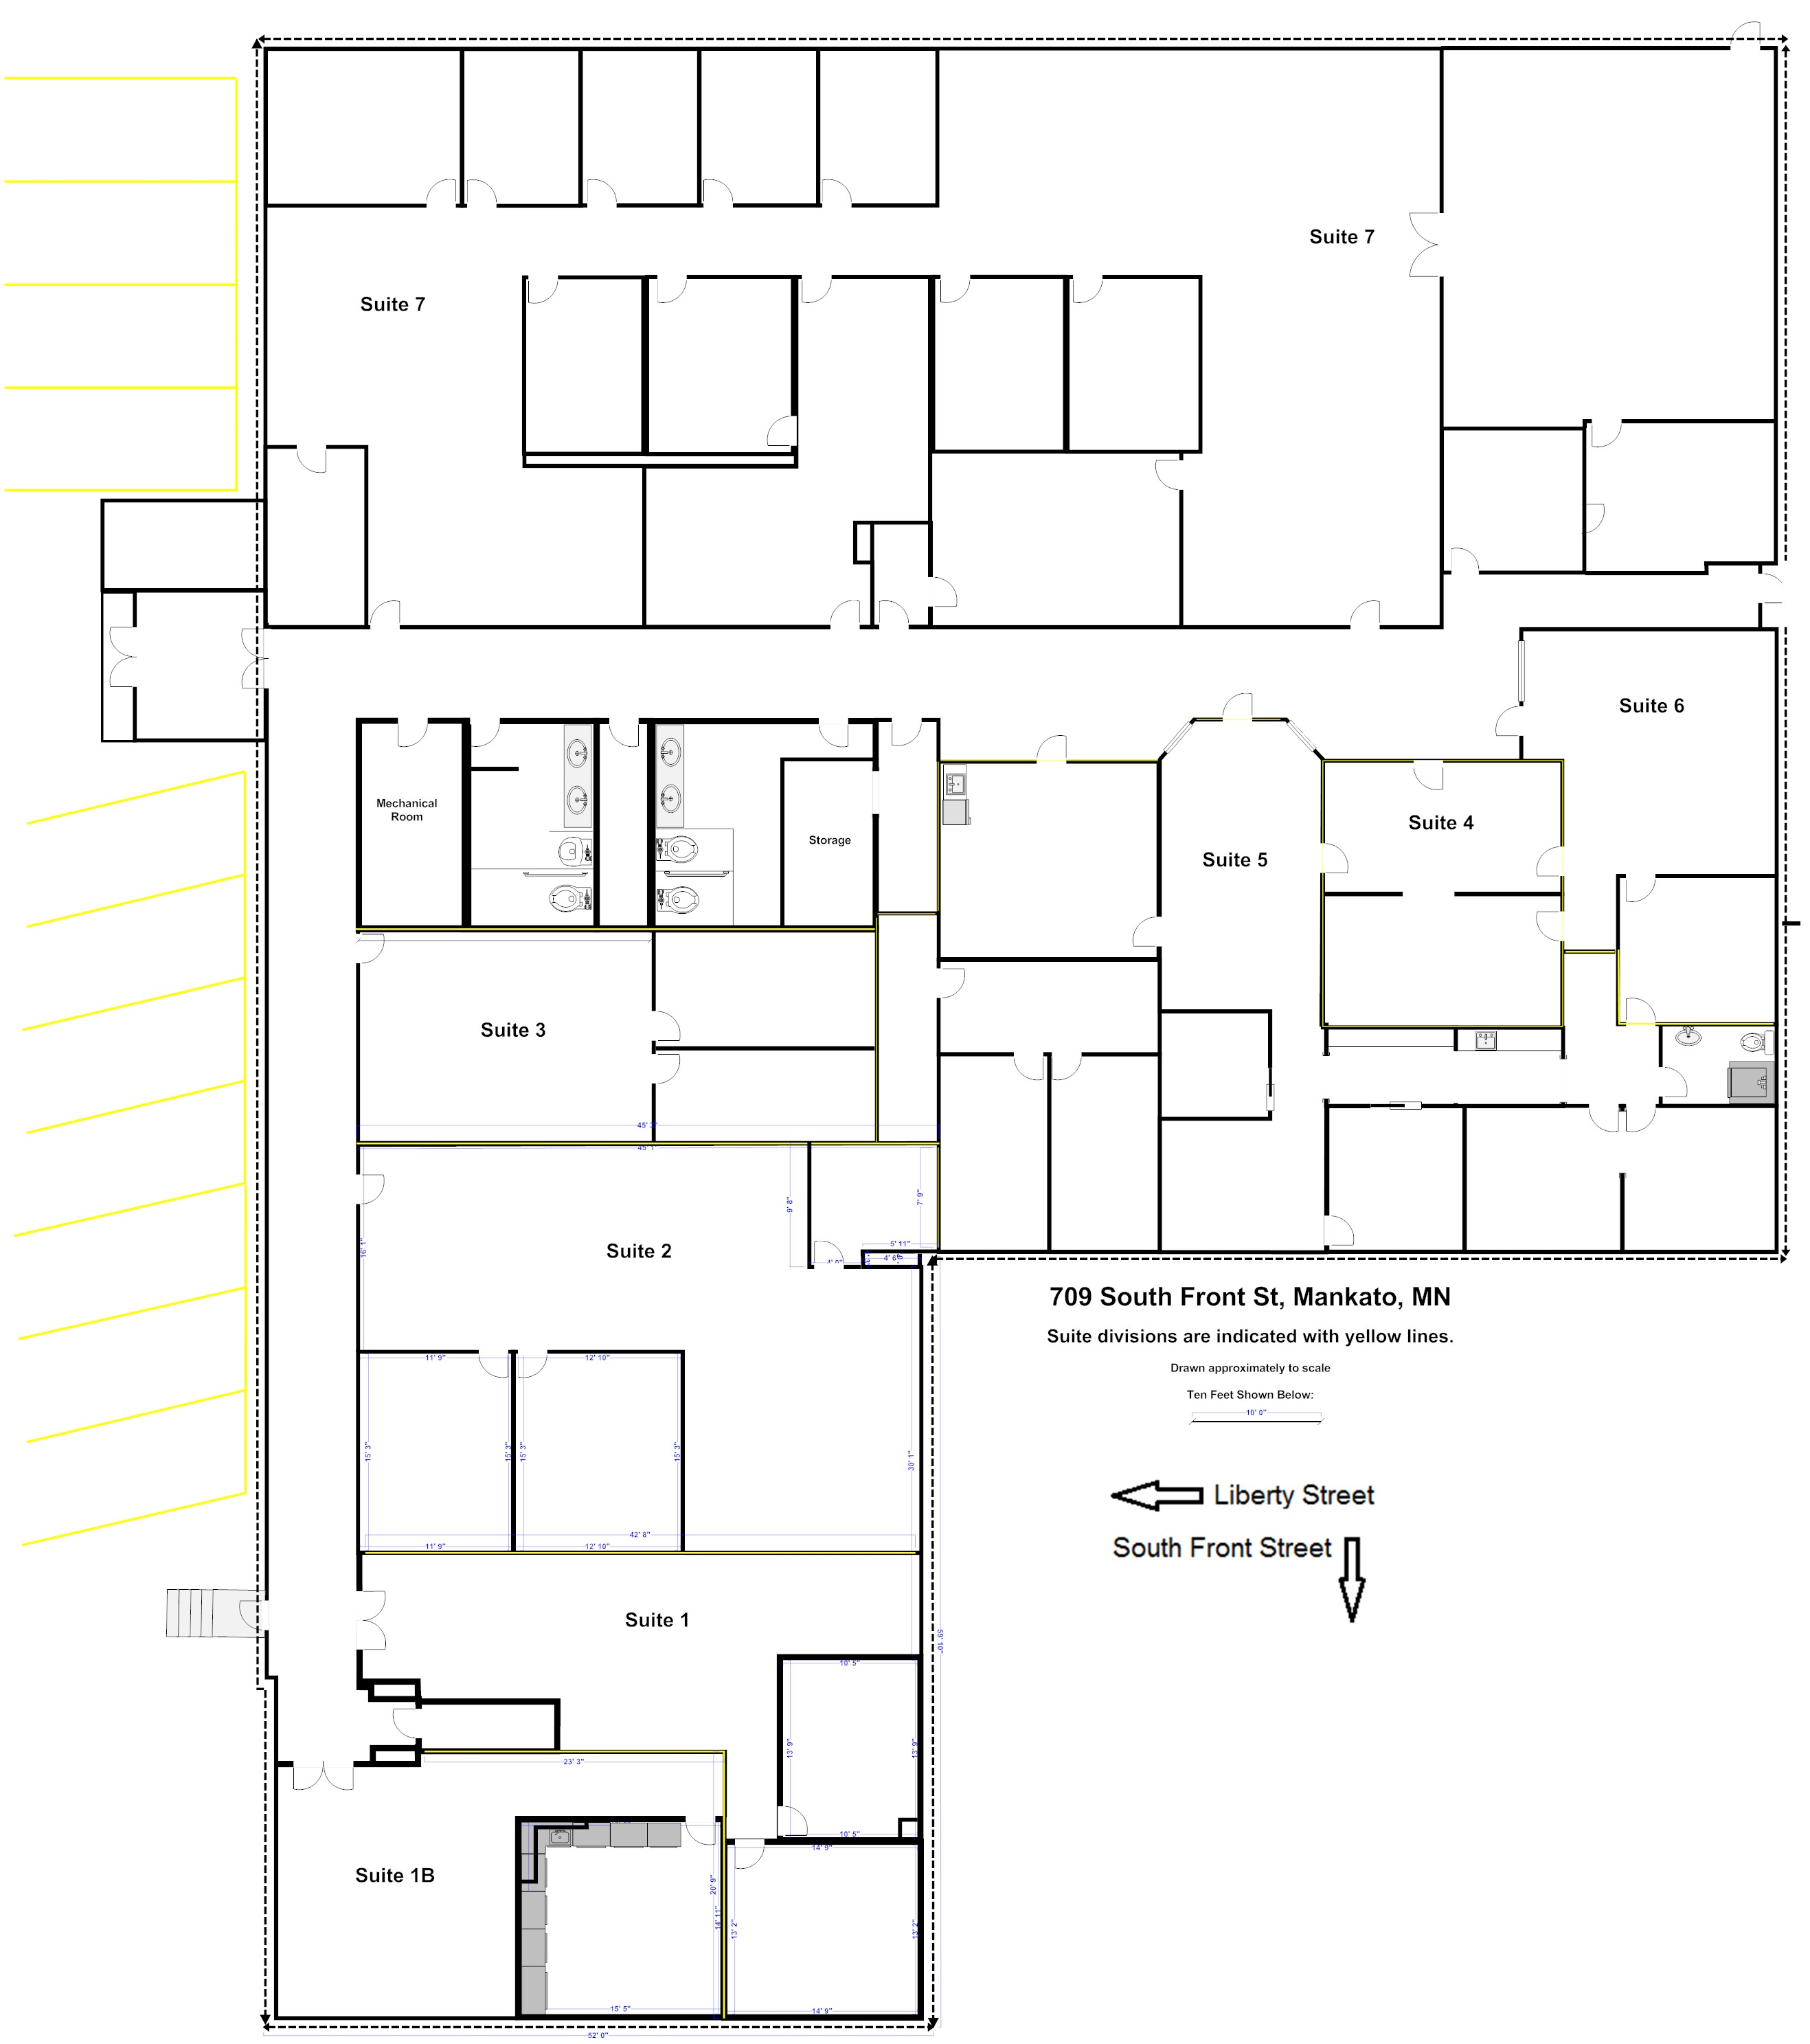 Commercial office building plans the for Commercial building floor plans free